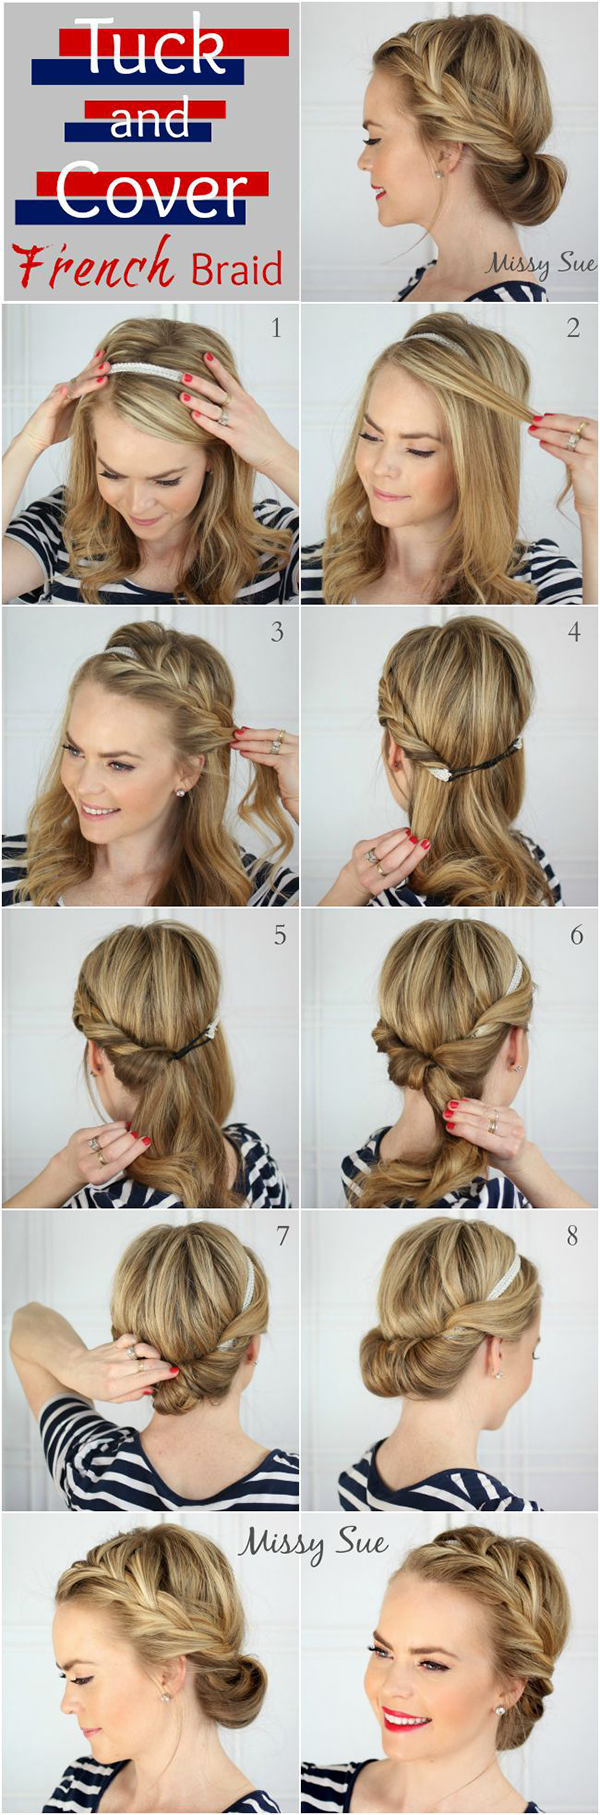 50 Diy Tutorials For Long Hairstyles The Hairstyle Mag